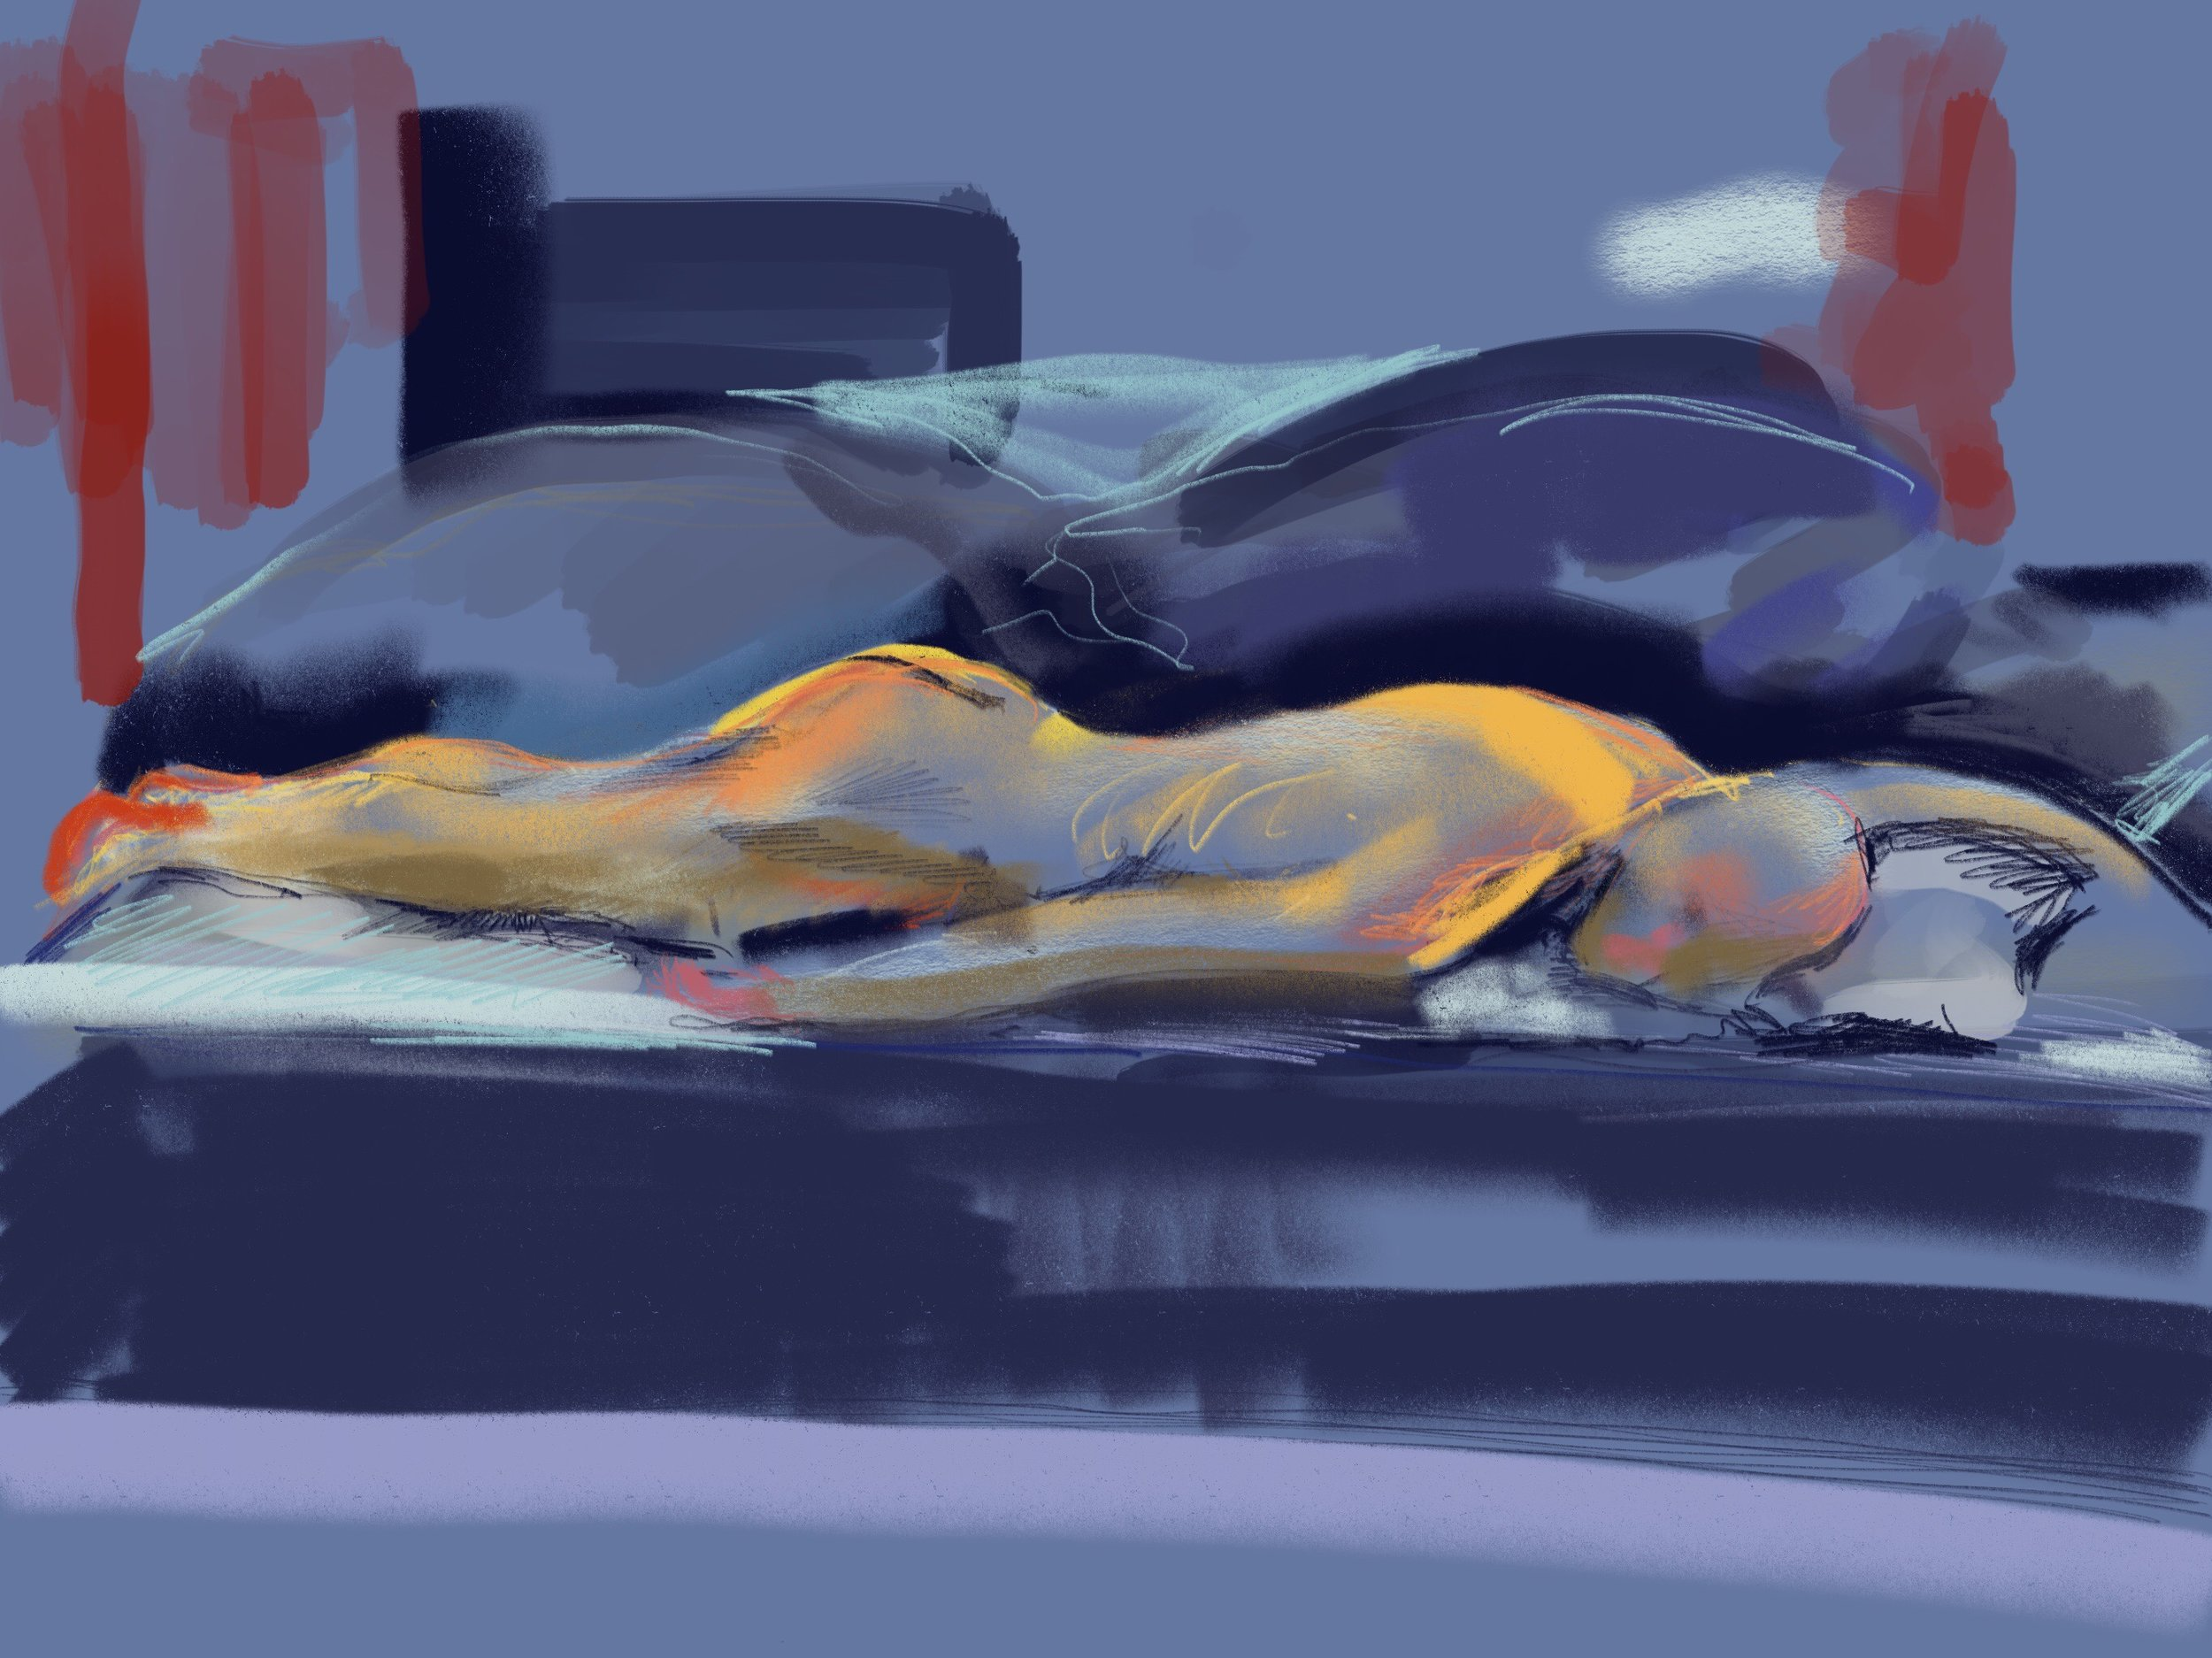 Sleeping Male: iPad digital drawing 2017